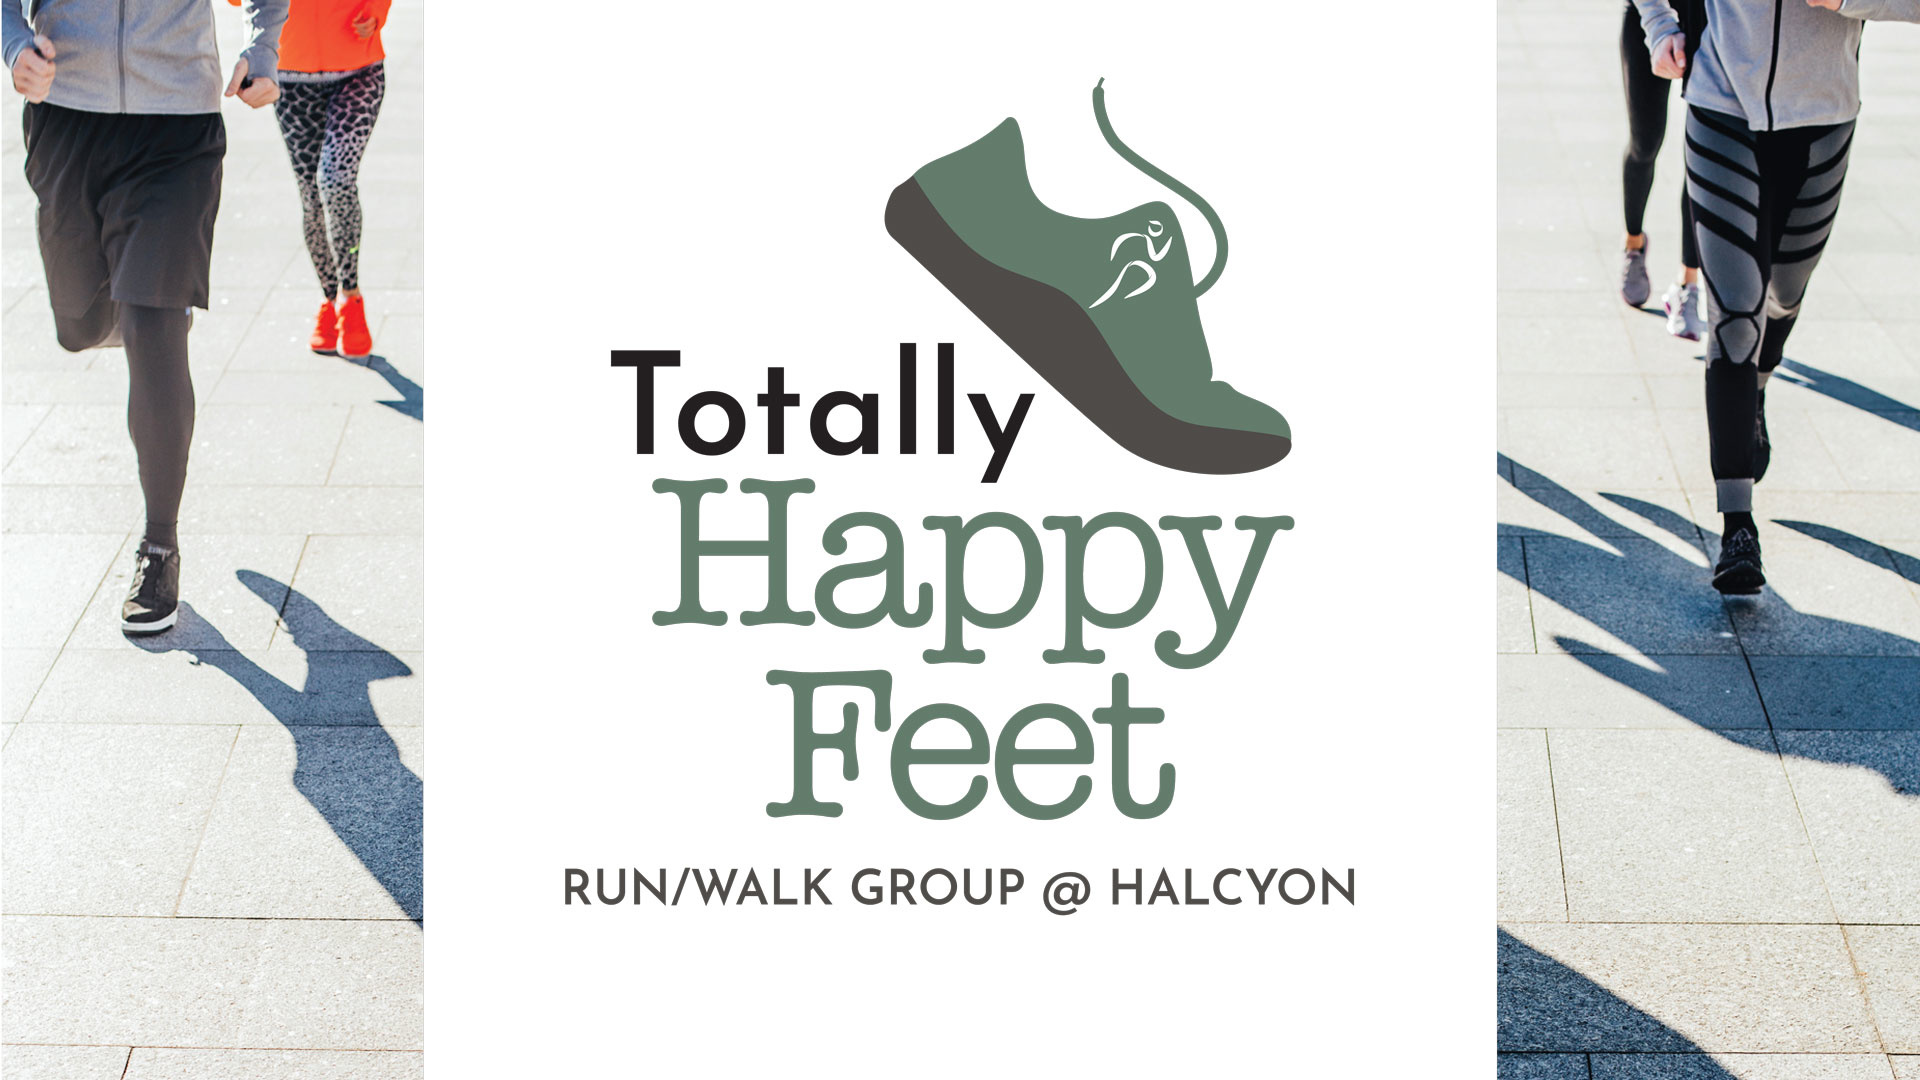 Join us for the inaugural Totally Happy Feet Run or Walk on Thursday, September 26, 2019.